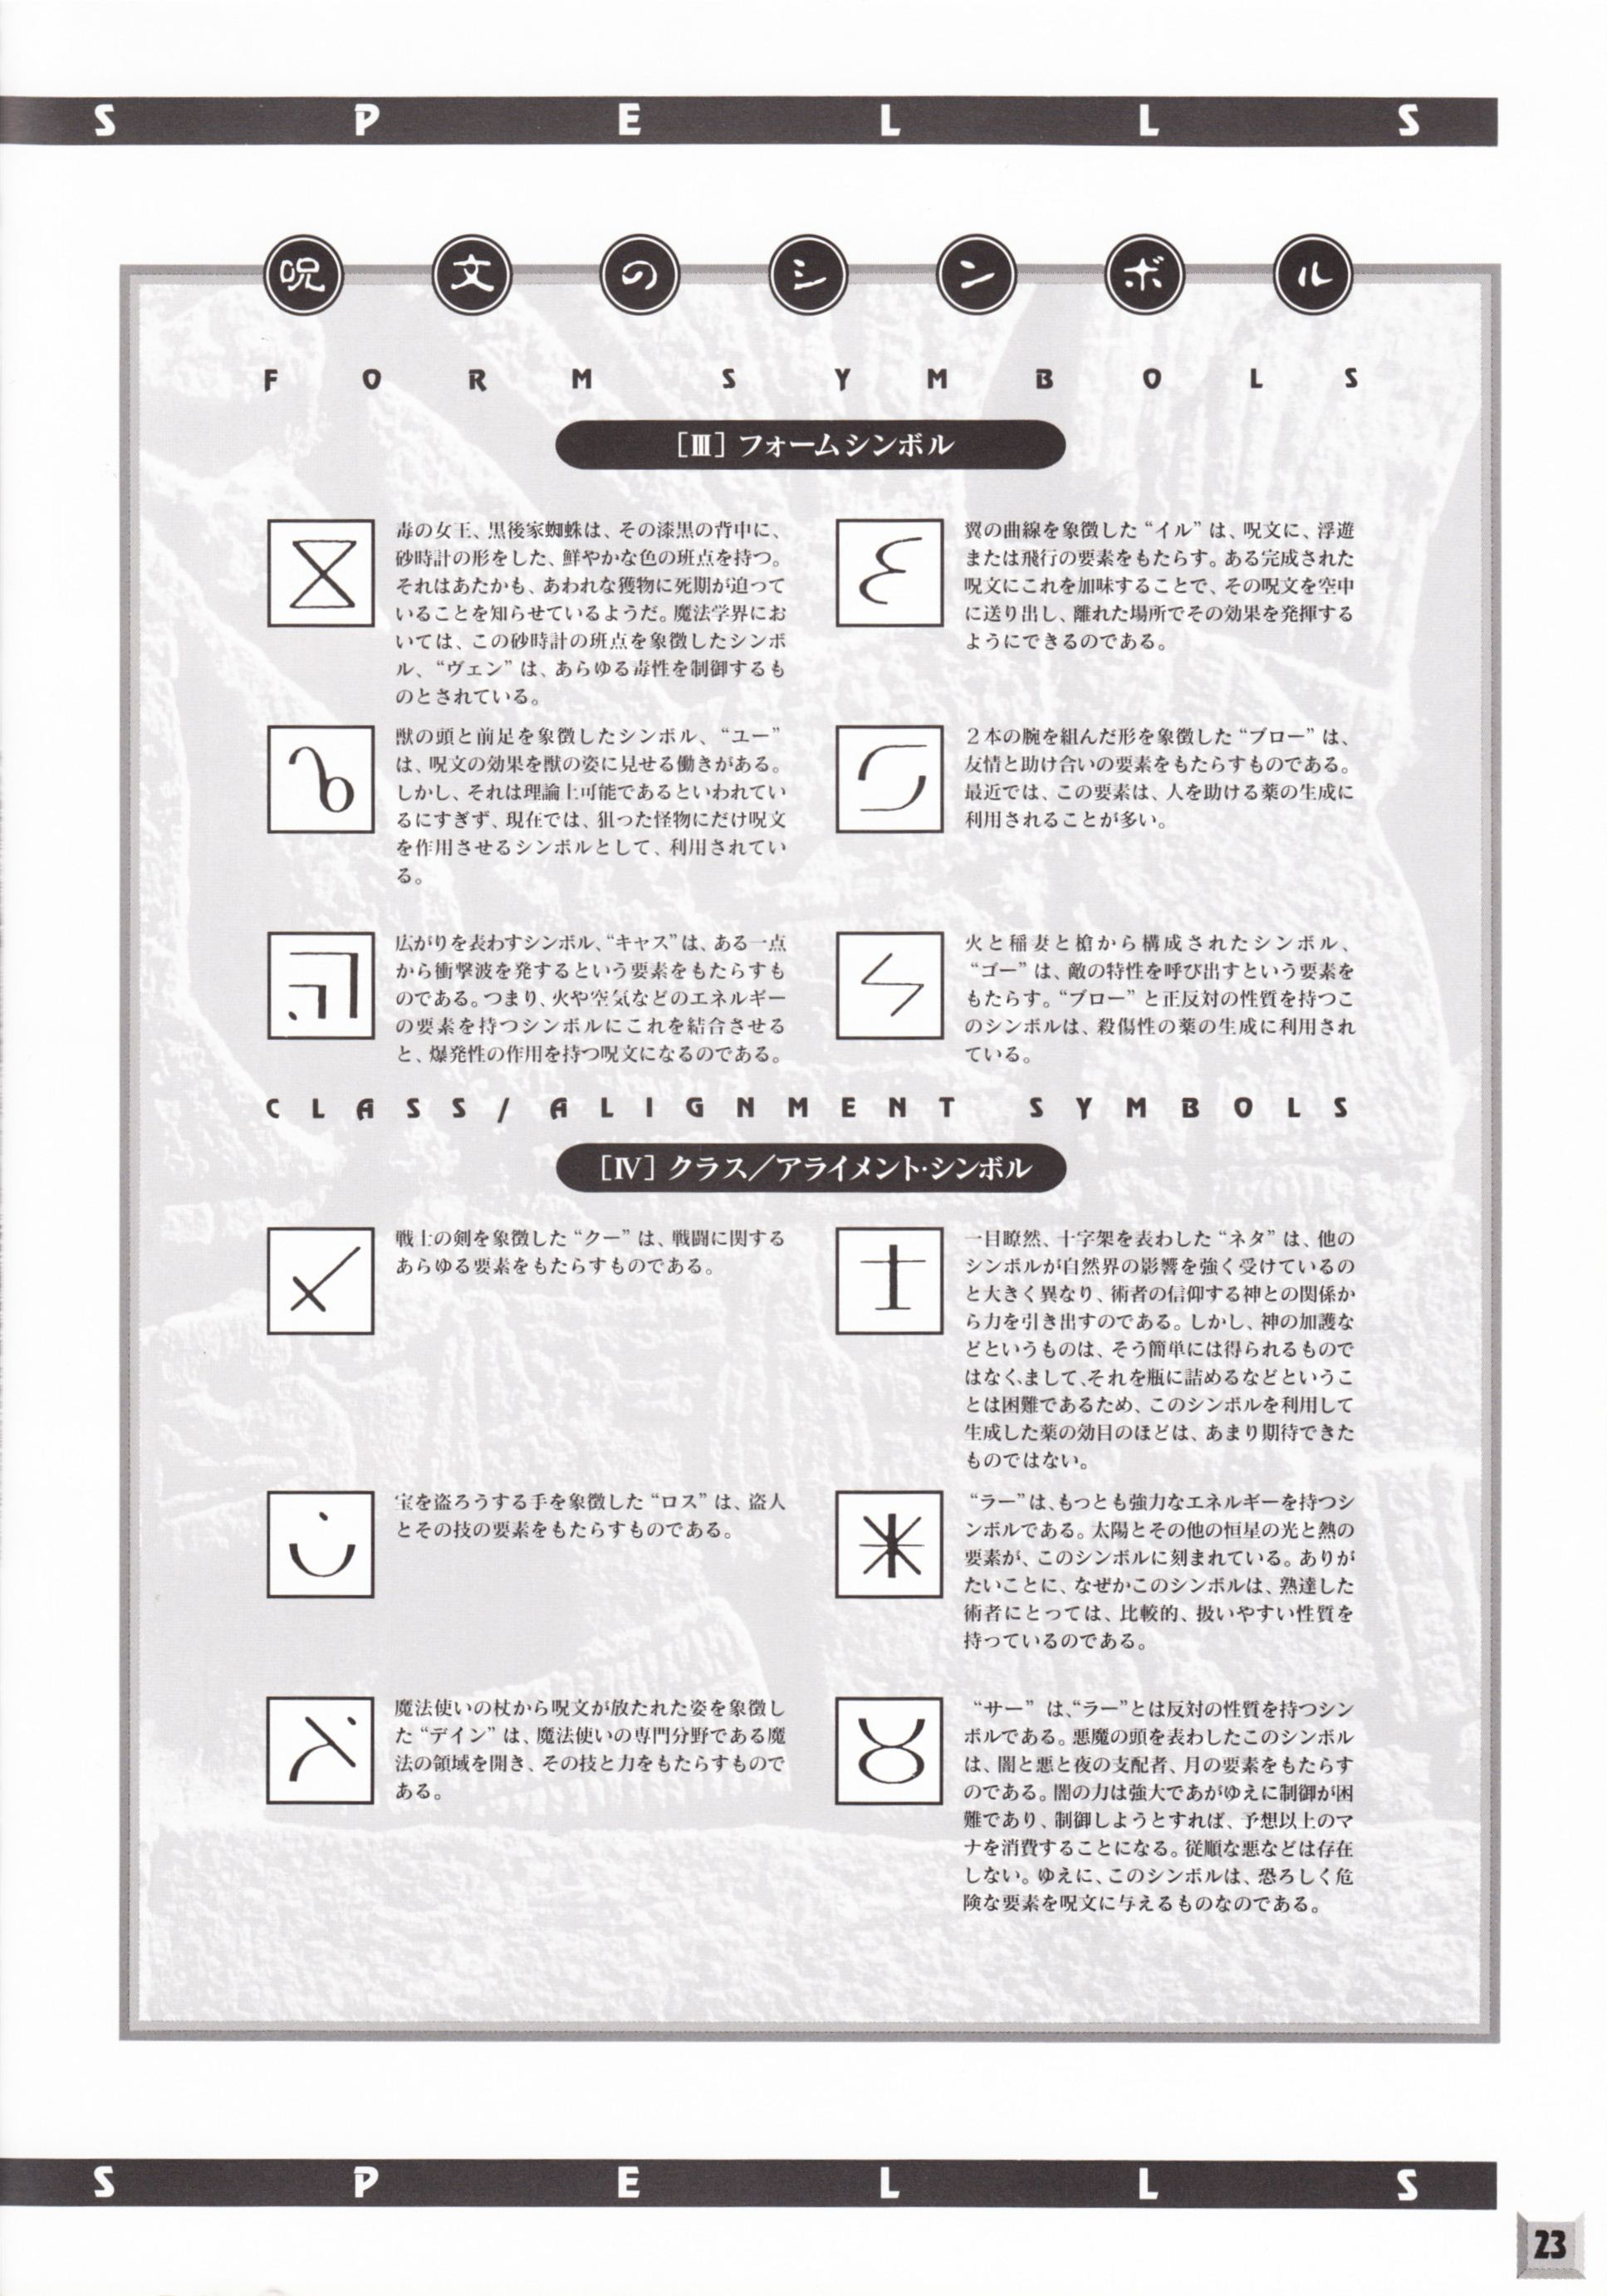 Game - Dungeon Master II - JP - PC-9801 - 3.5-inch - The Guidance Of Adventure - Page 025 - Scan